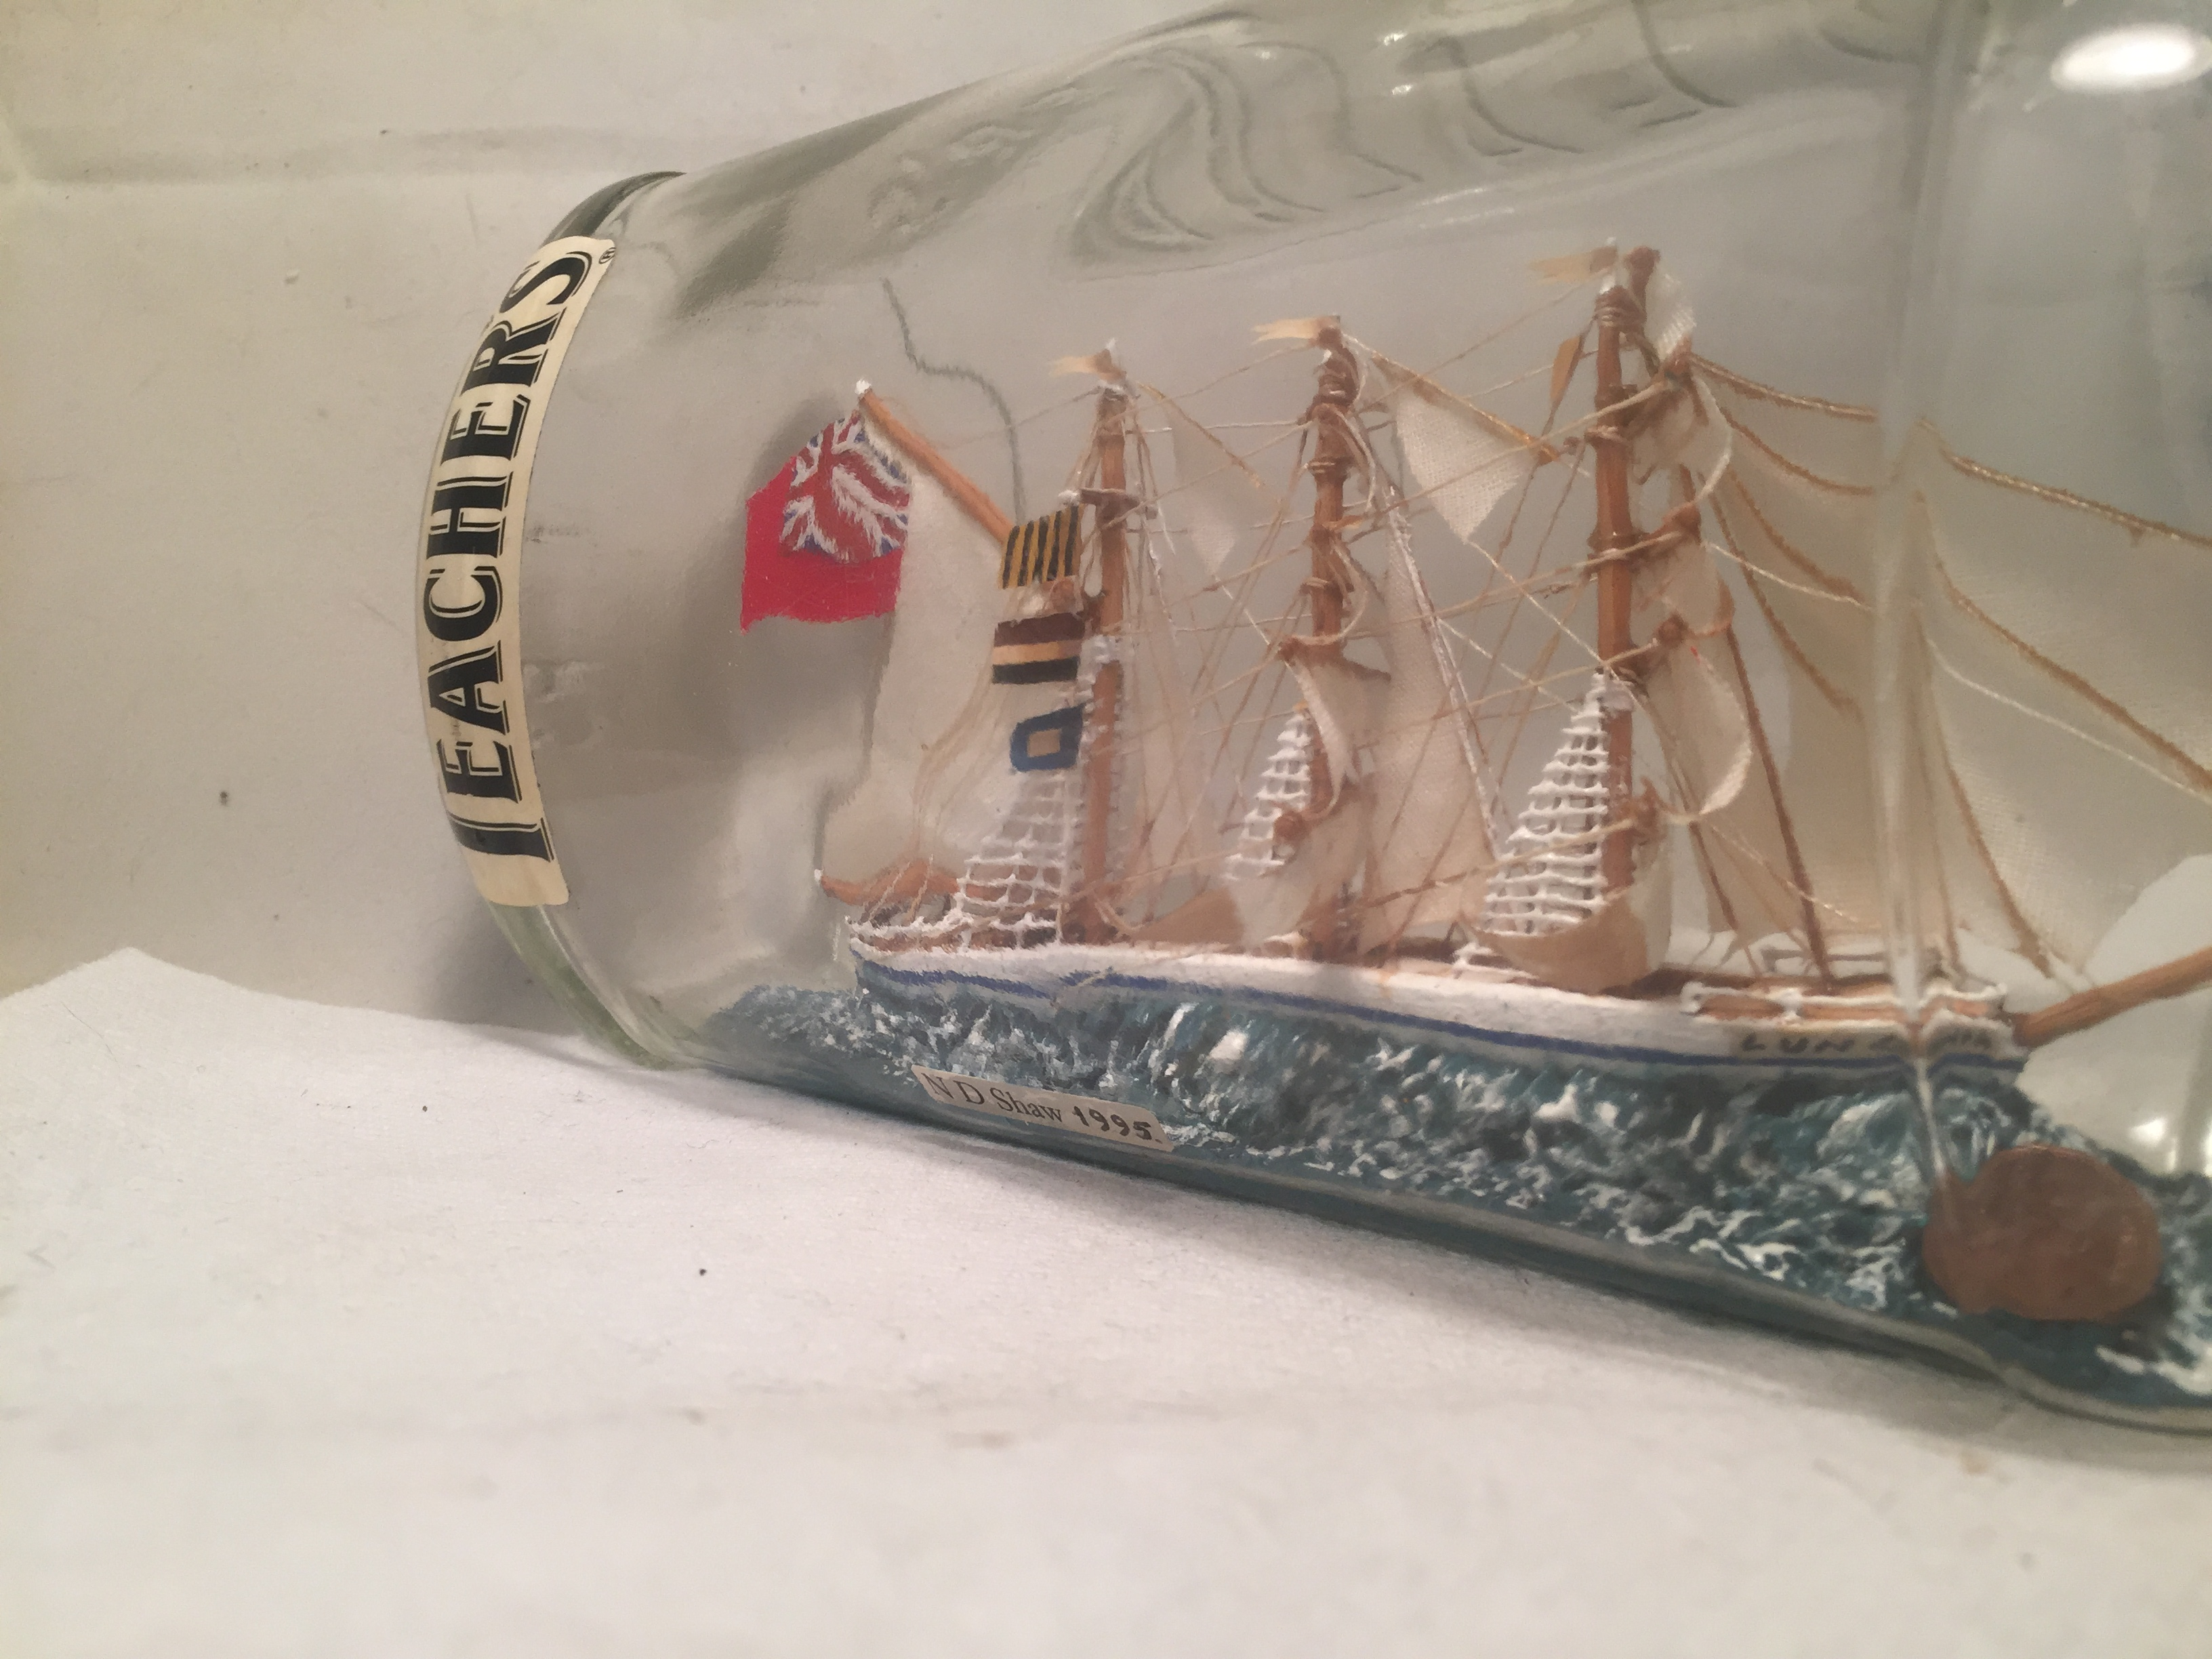 LUNGWHA ship in a bottle